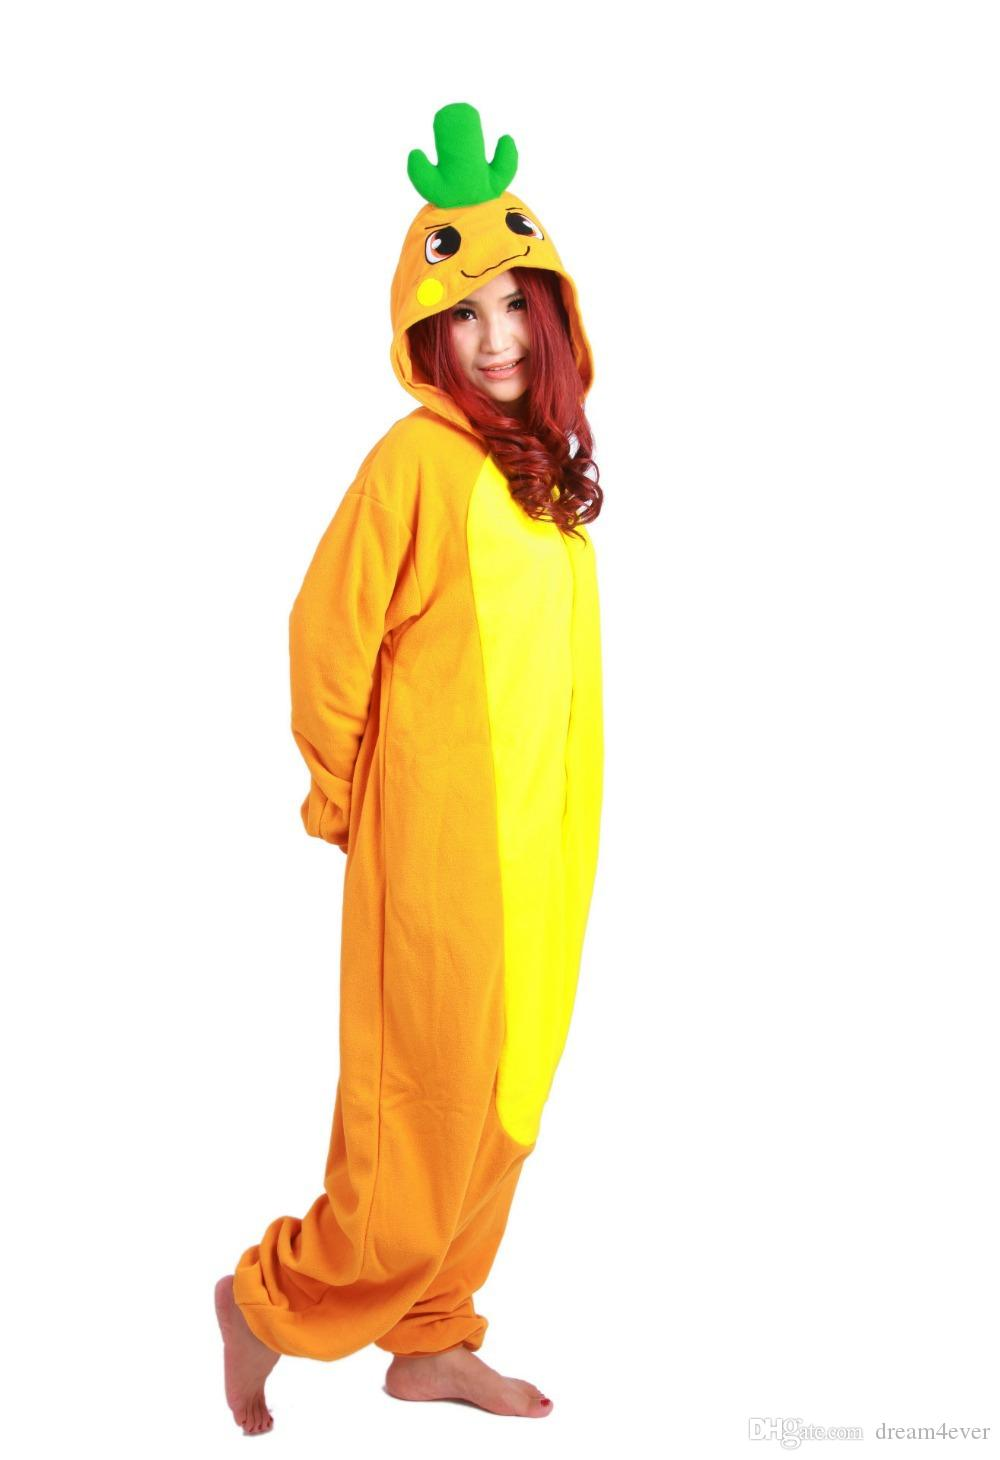 SS Winter long sleeve Yellow orange Anime Onesie Sleepwear Cosplay Carrot Costume Pajamas Adult Pyjamas Party